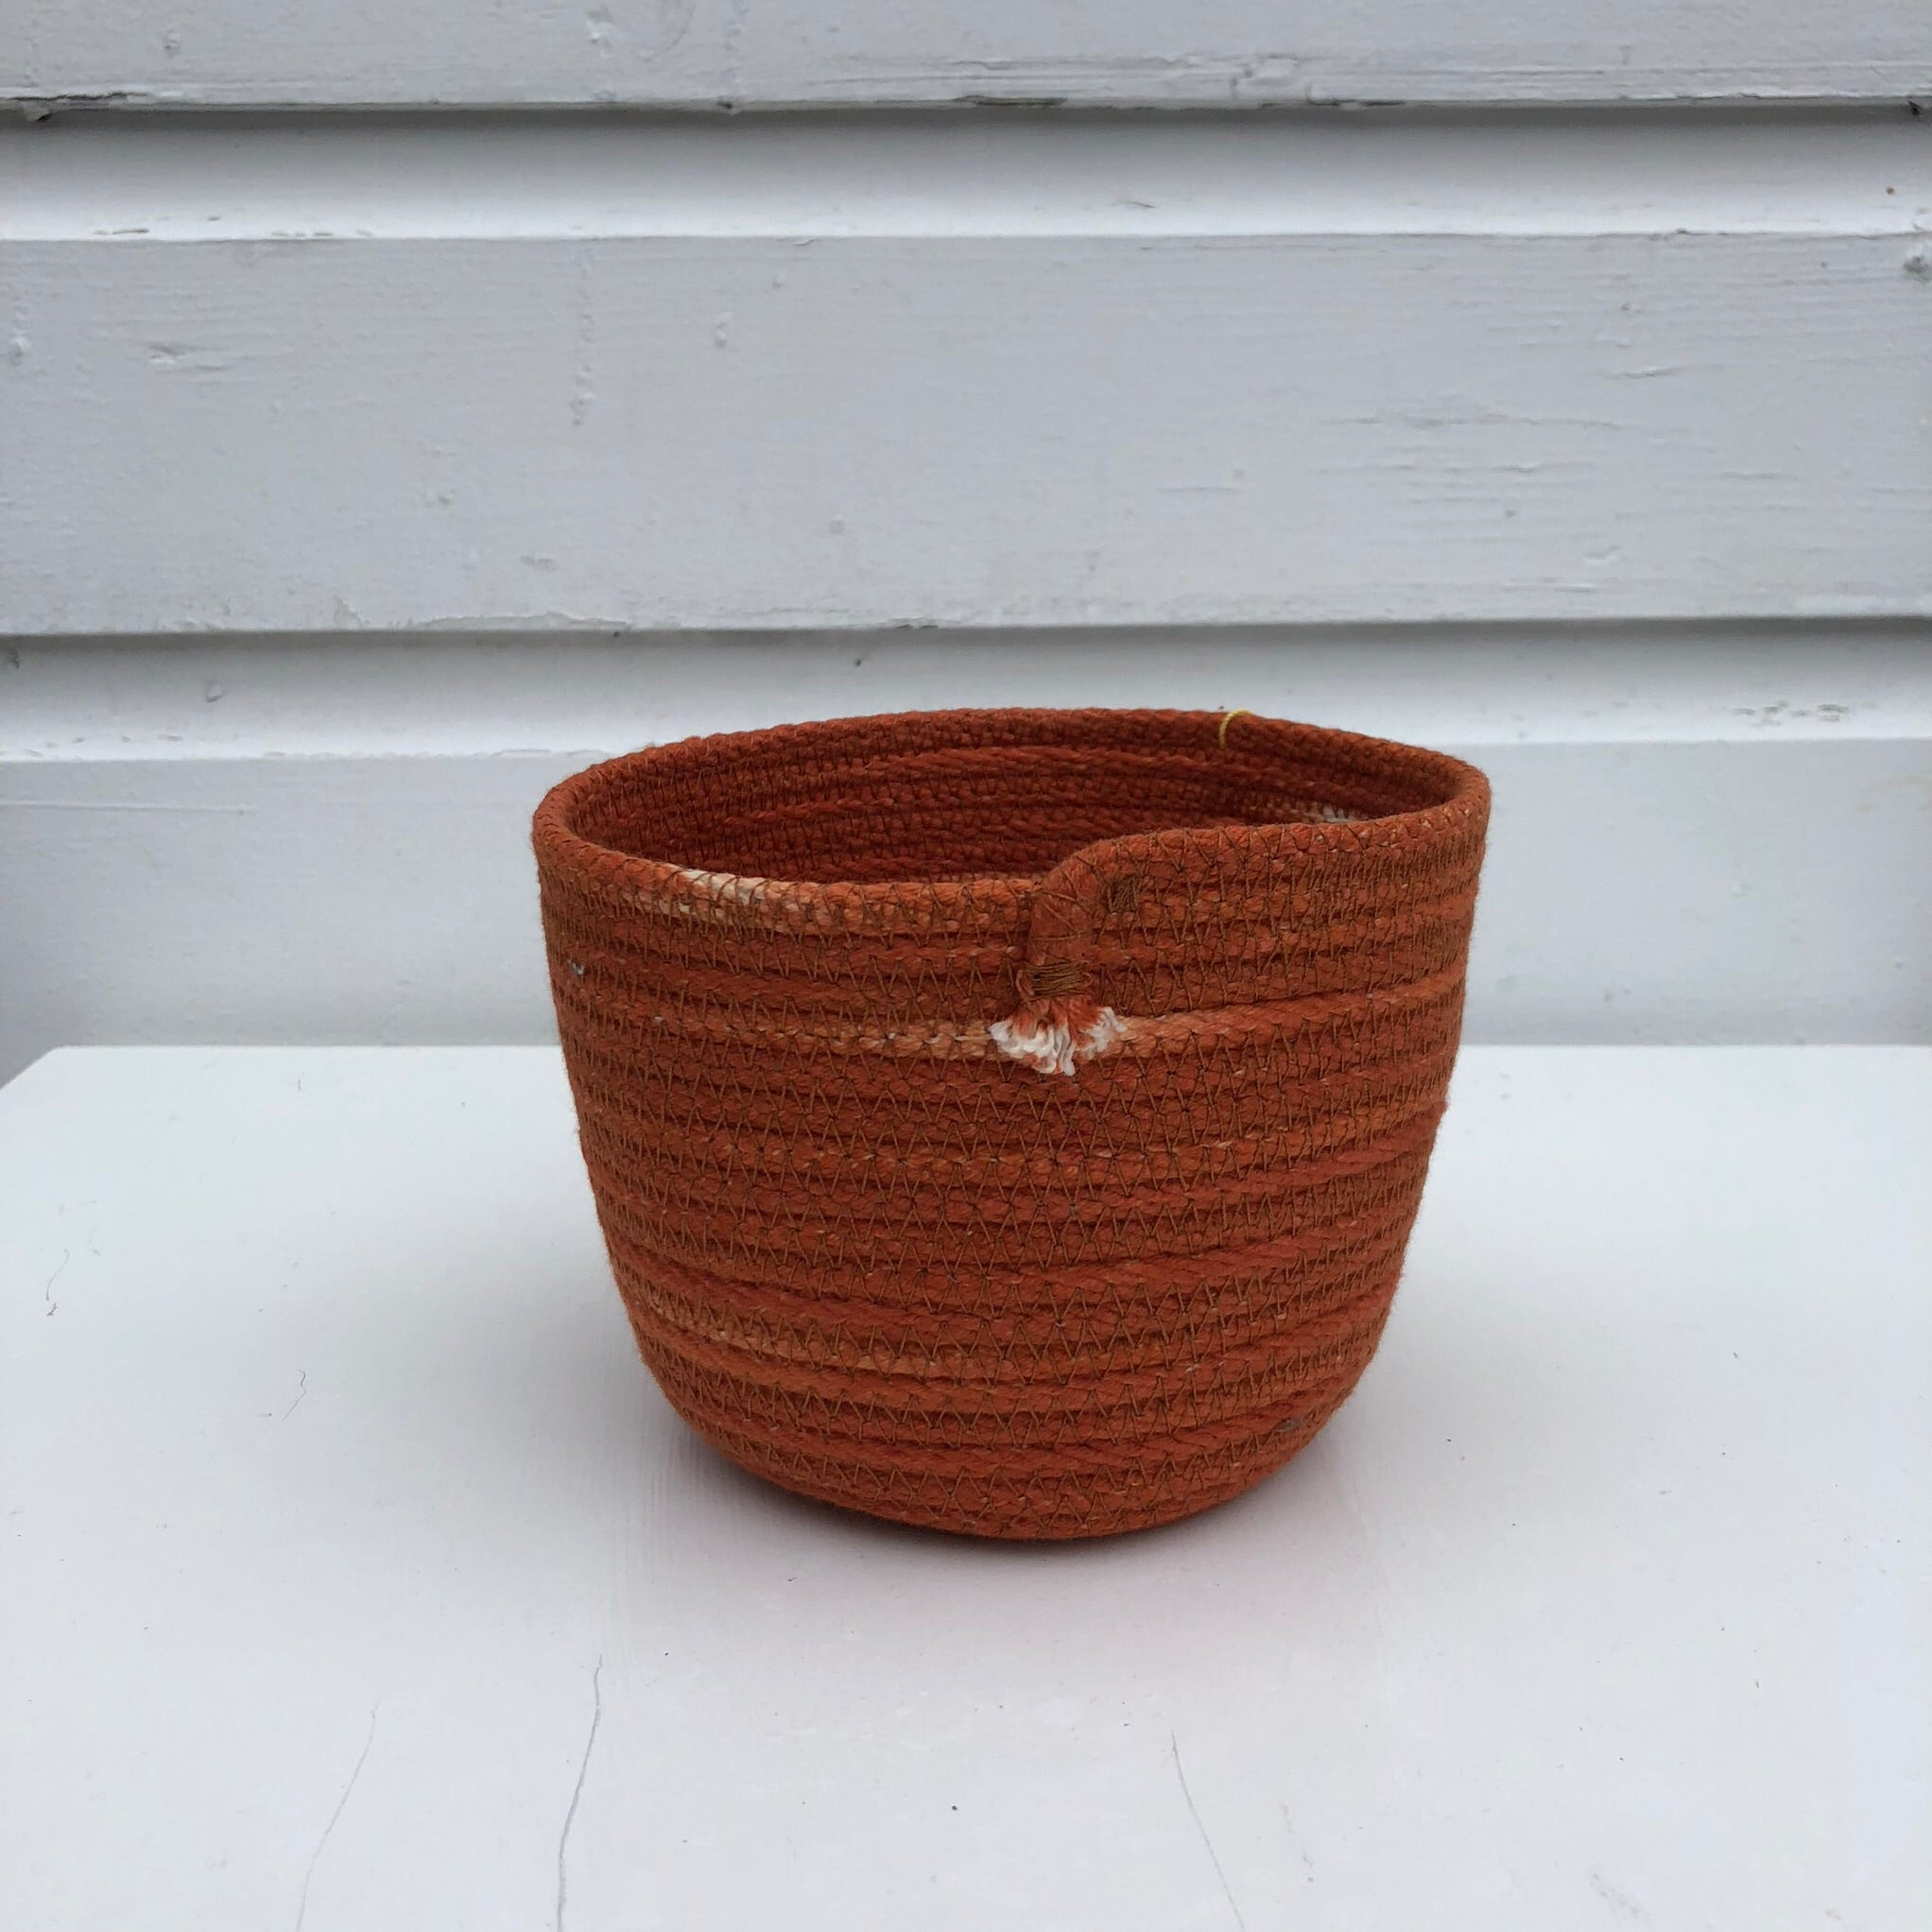 Hey Blue Handmade - Cotton Rope Vessels